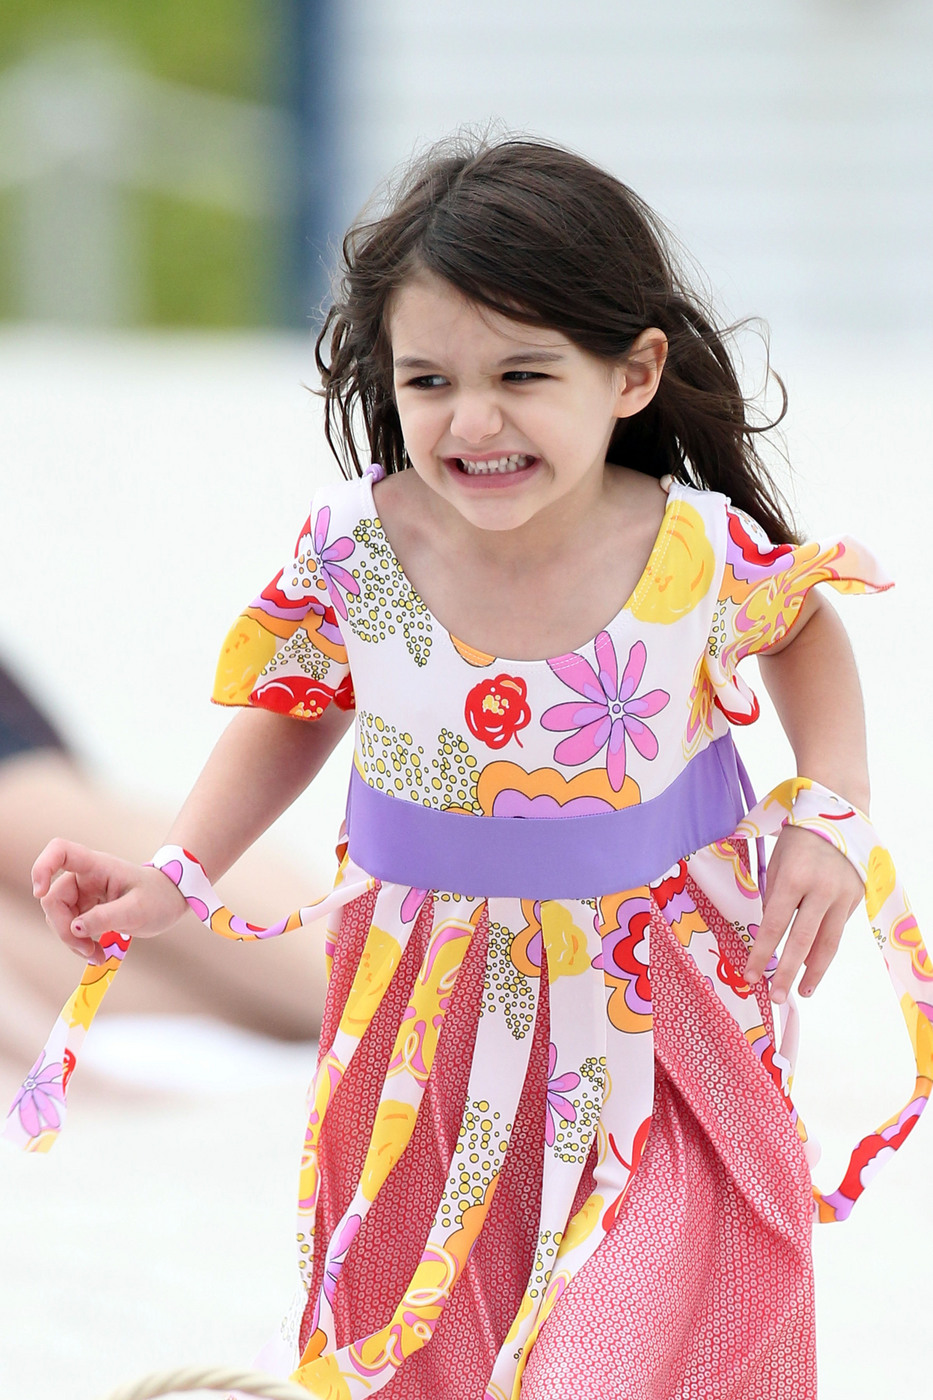 Wallpapers free downloads - hhg1216: Suri Cruise Tops the ...